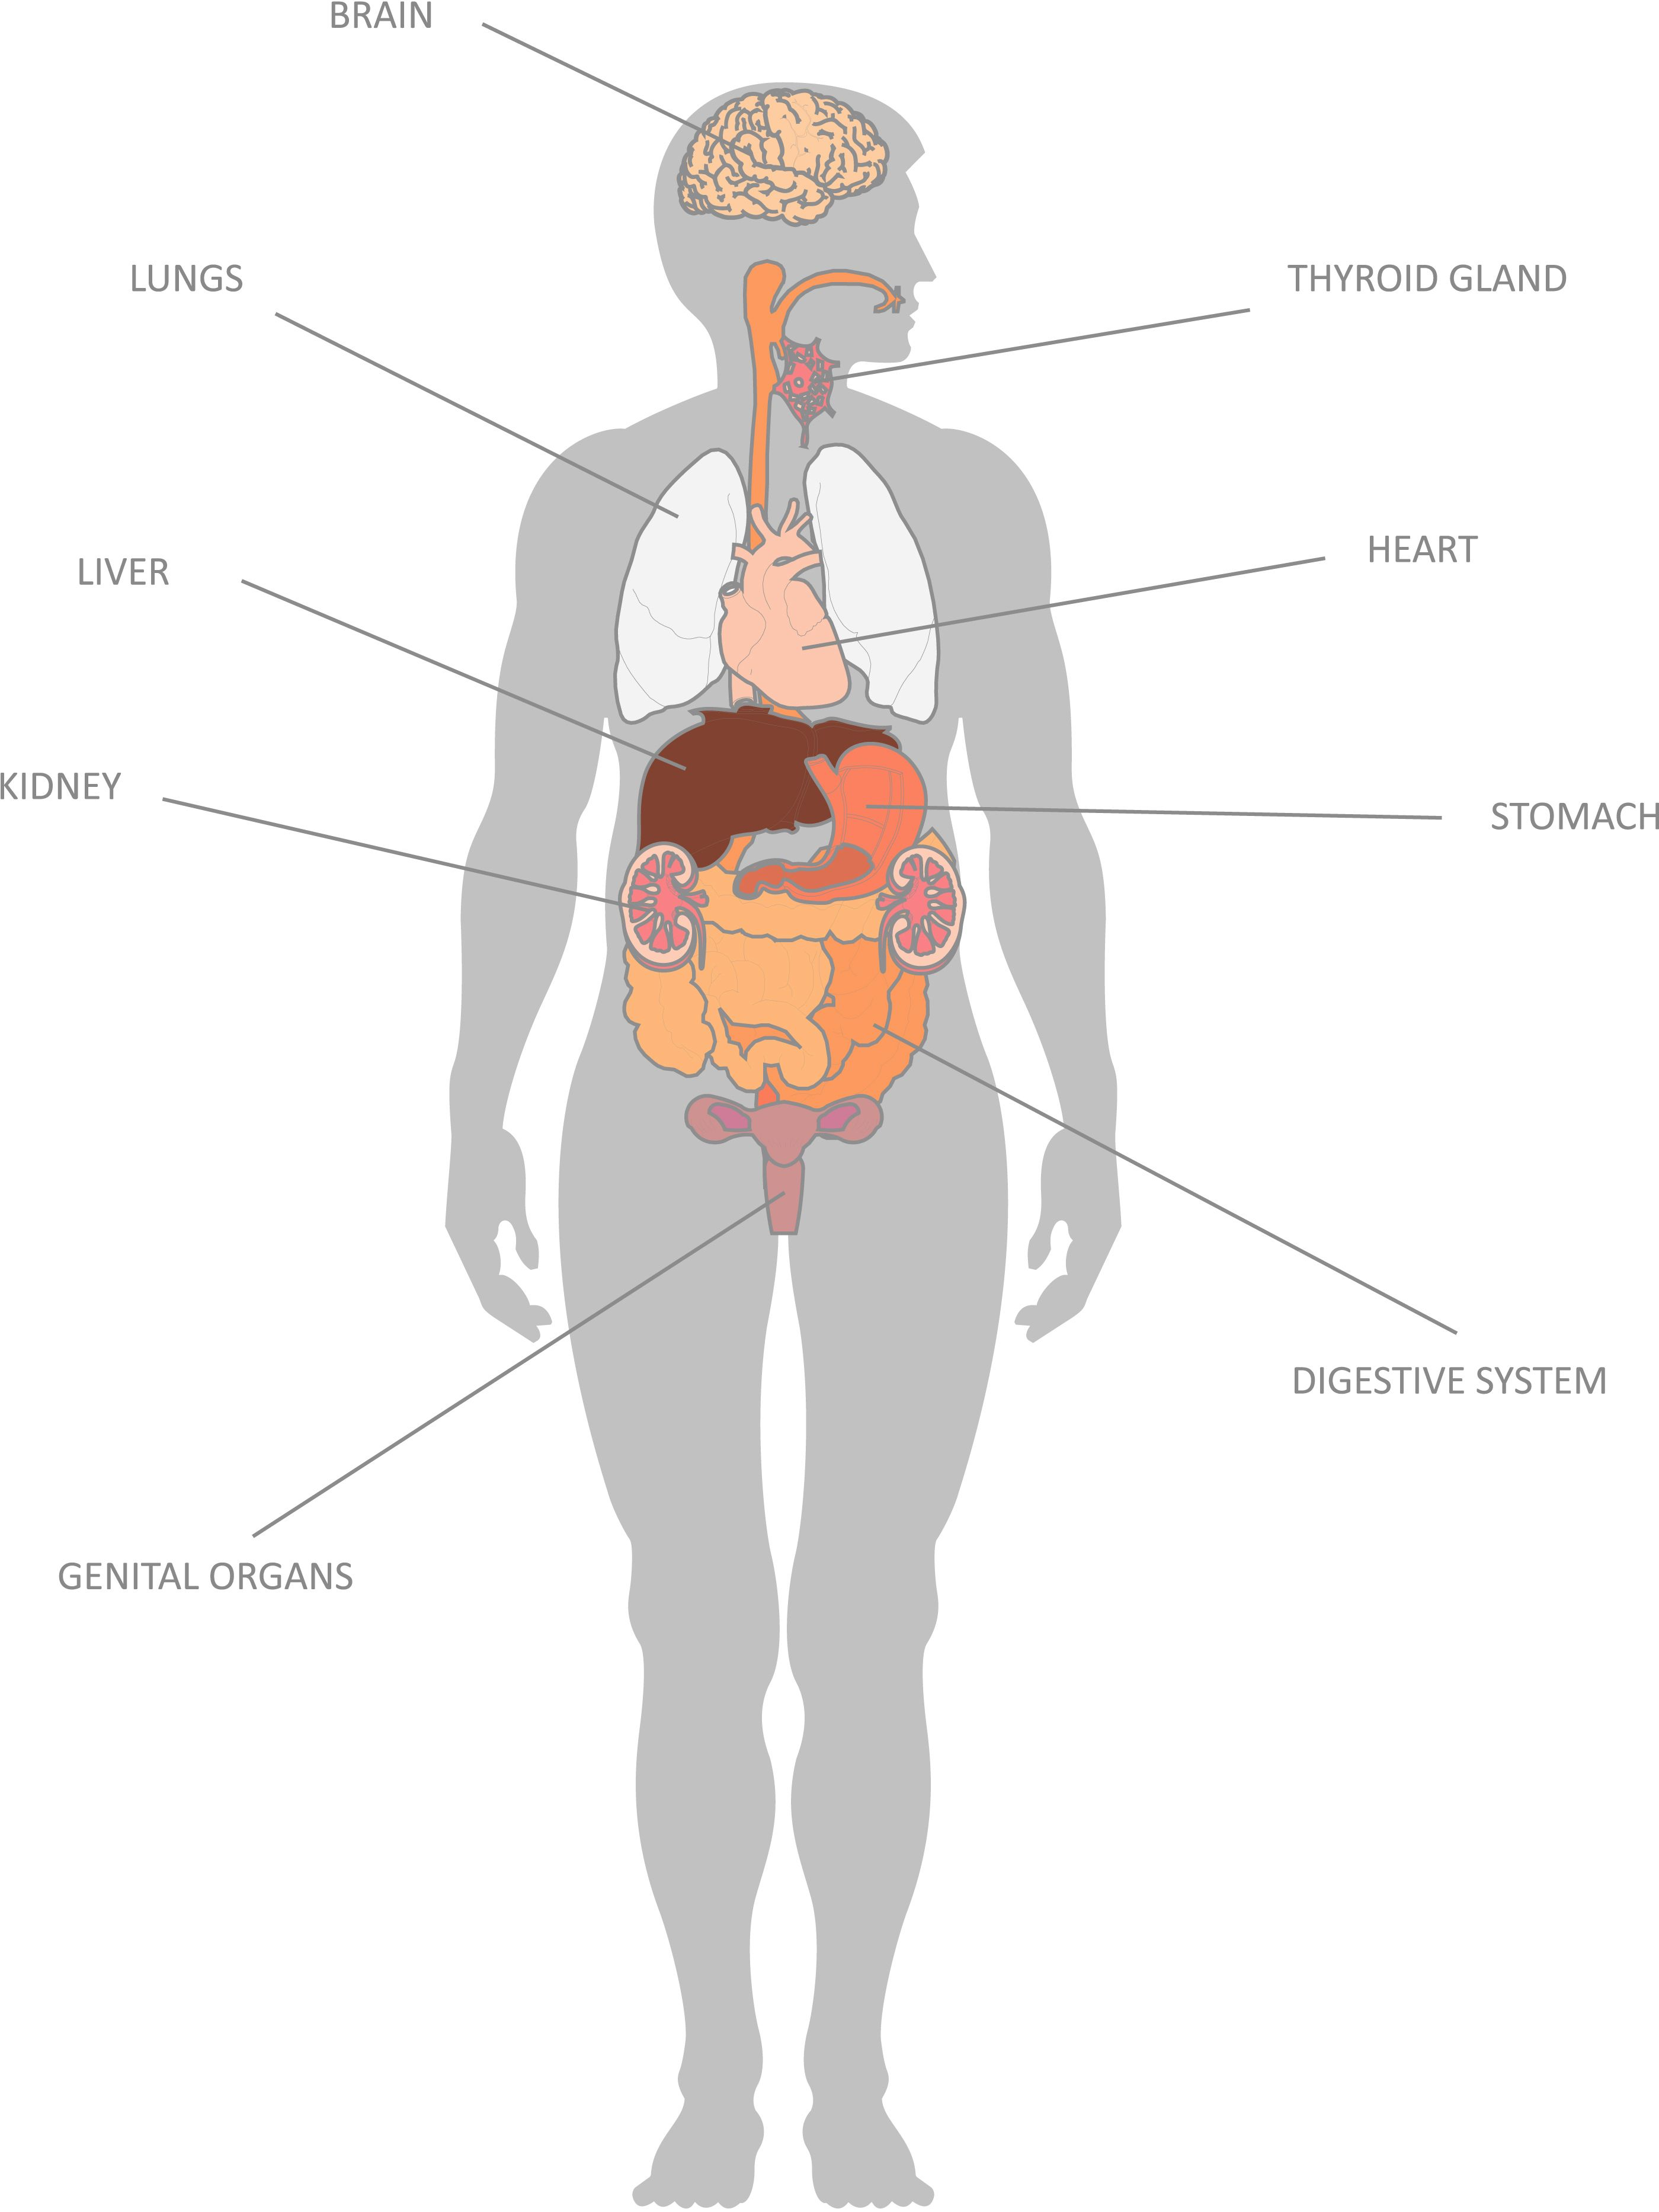 Having Map of Internal Organs to Understand Human Body | Anatomy of ...